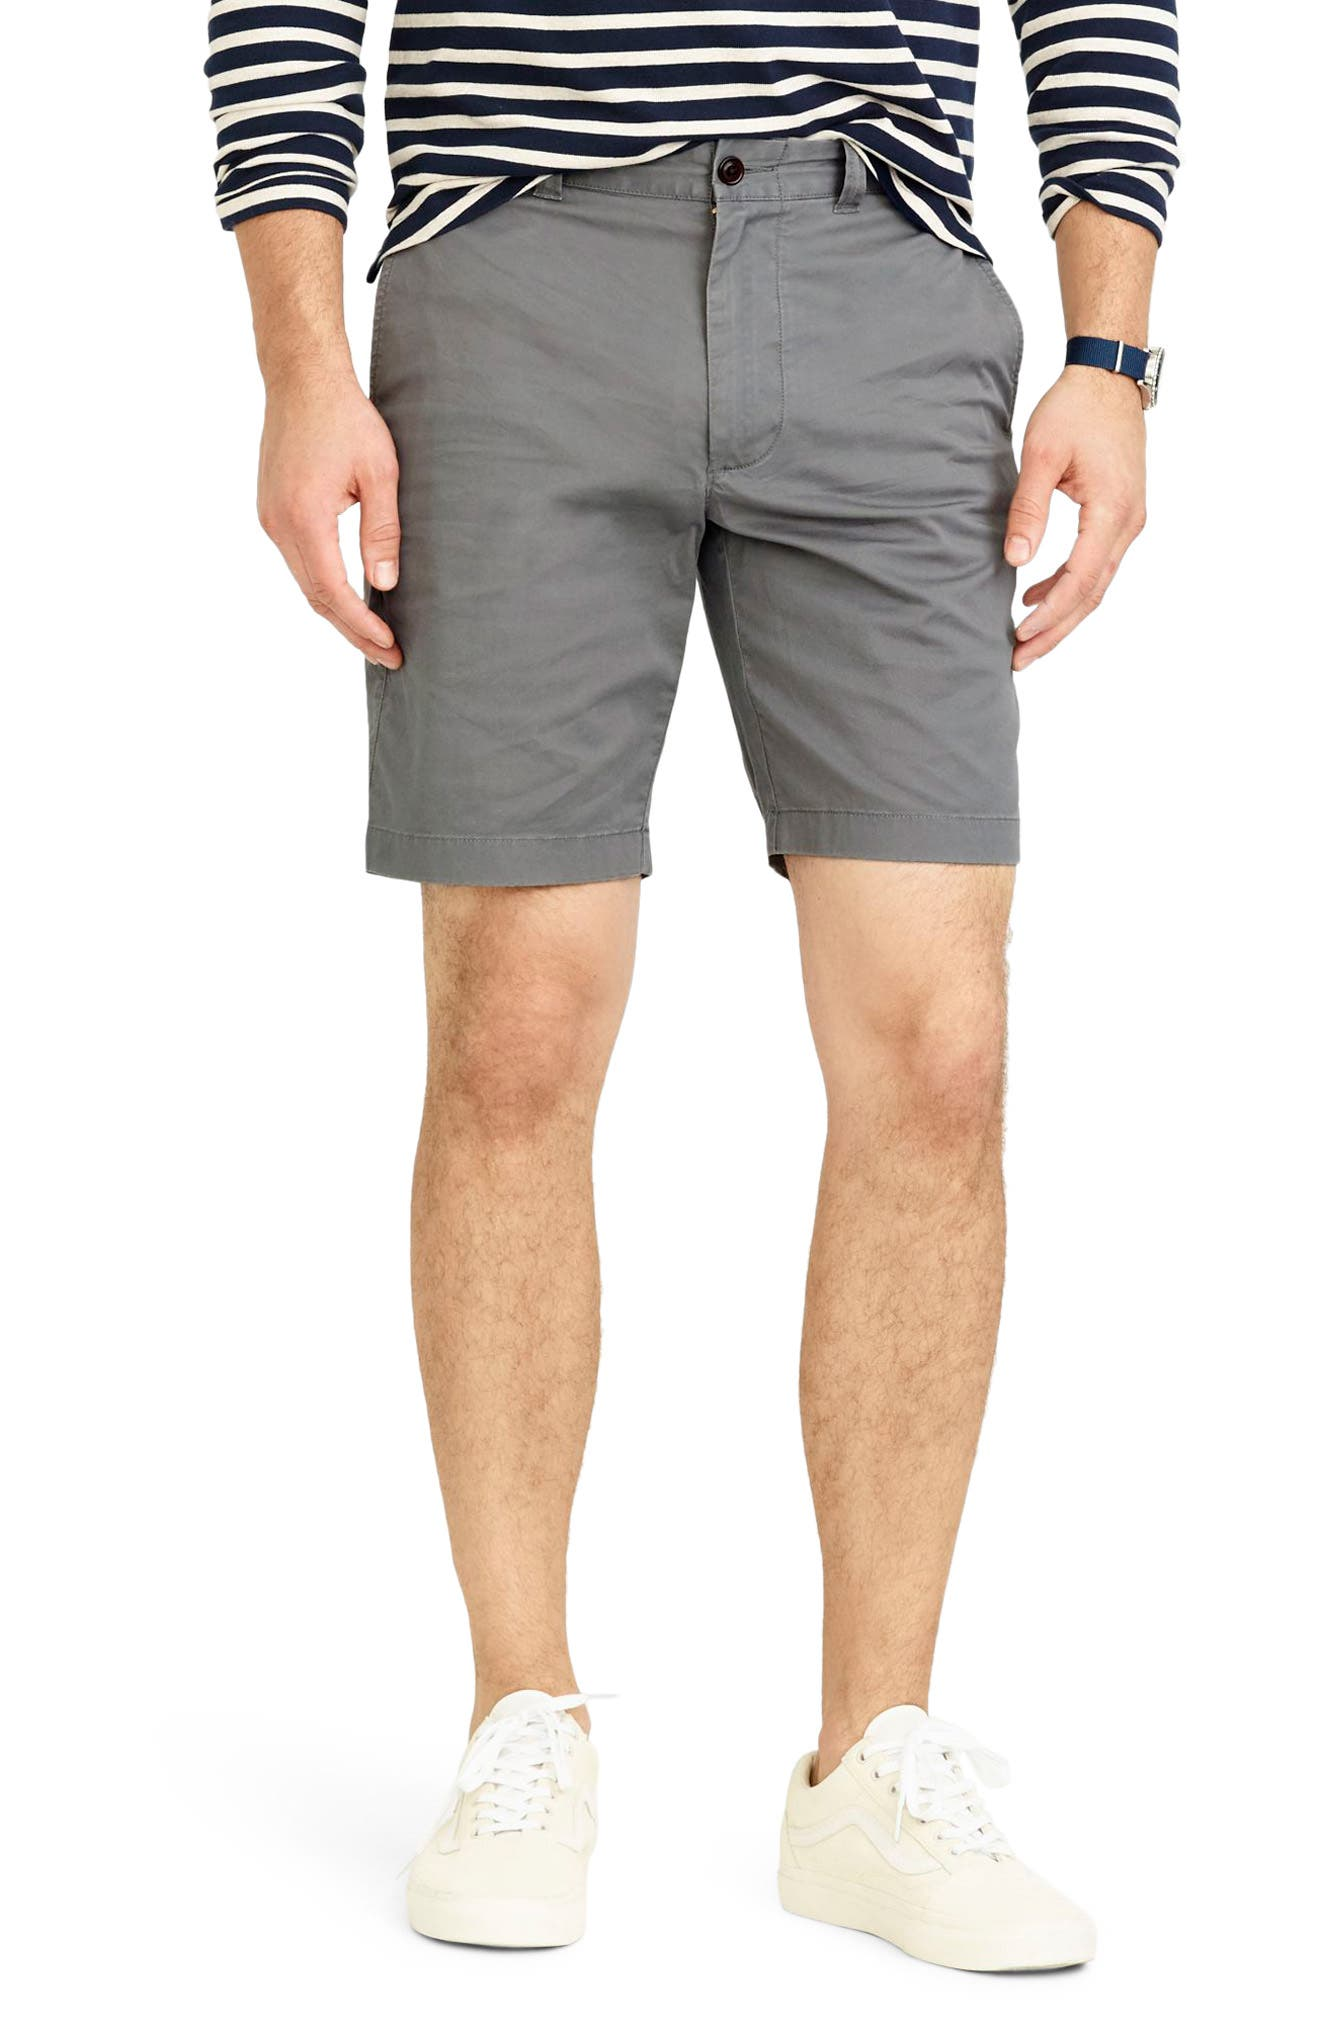 Stretch Chino Shorts,                         Main,                         color, 020